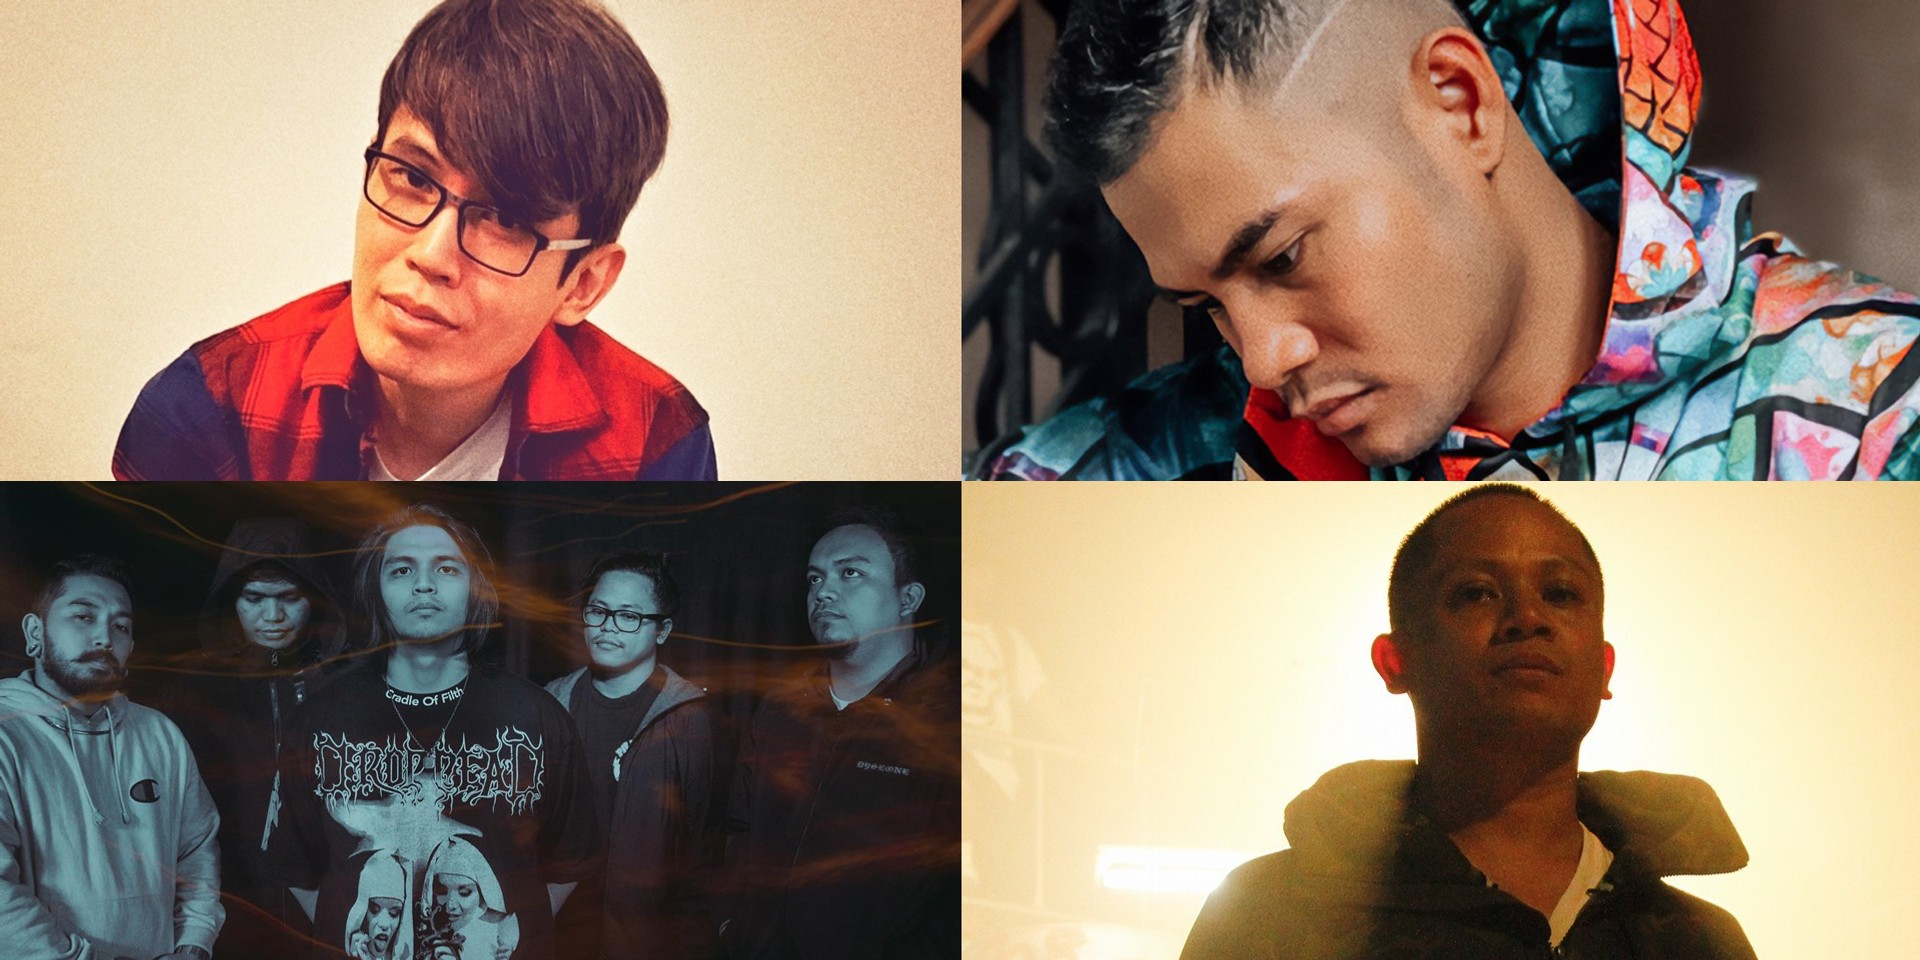 Hannah + Gabi, Mike Swift, Bugoy Drilon, Fragments, and more release new music – listen